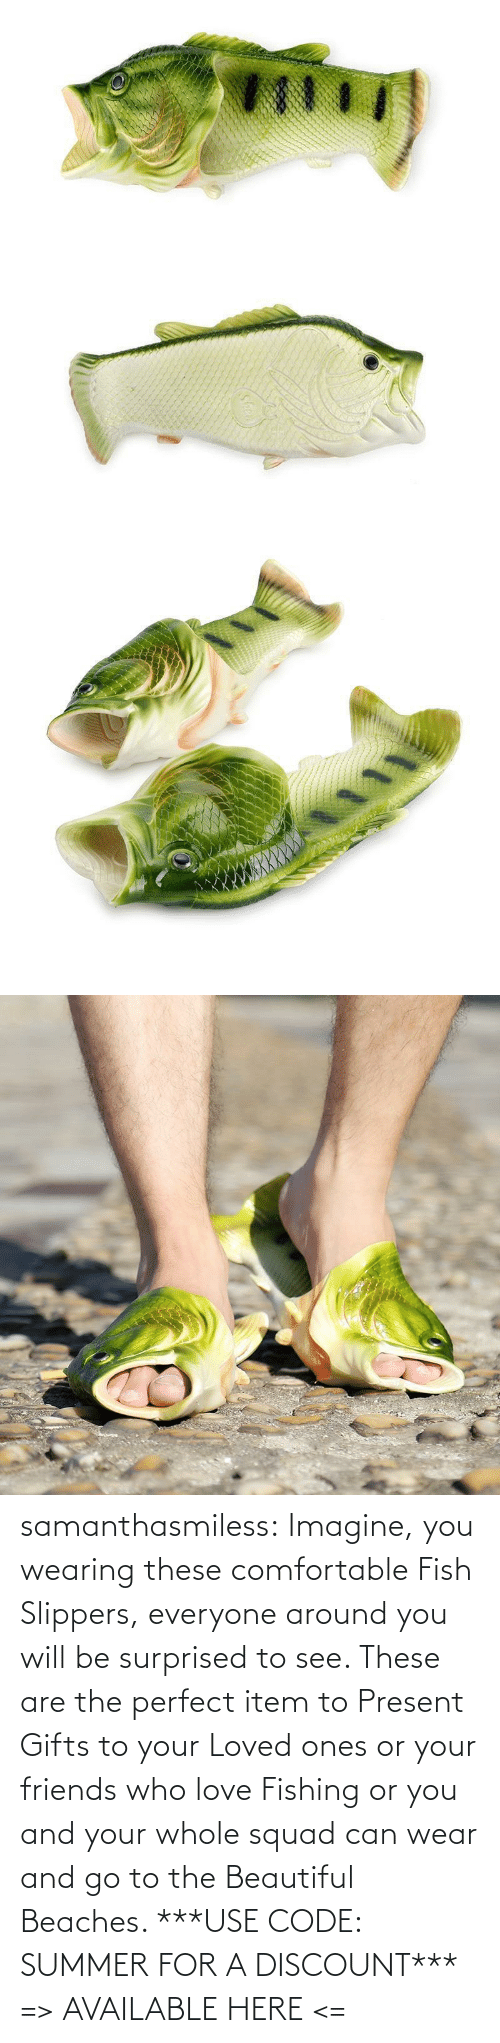 will: samanthasmiless: Imagine, you wearing these comfortable Fish Slippers, everyone around you will be surprised to see. These are the perfect item to Present Gifts to your Loved ones or your friends who love Fishing or you and your whole squad can wear and go to the Beautiful Beaches.  ***USE CODE: SUMMER FOR A DISCOUNT*** => AVAILABLE HERE <=